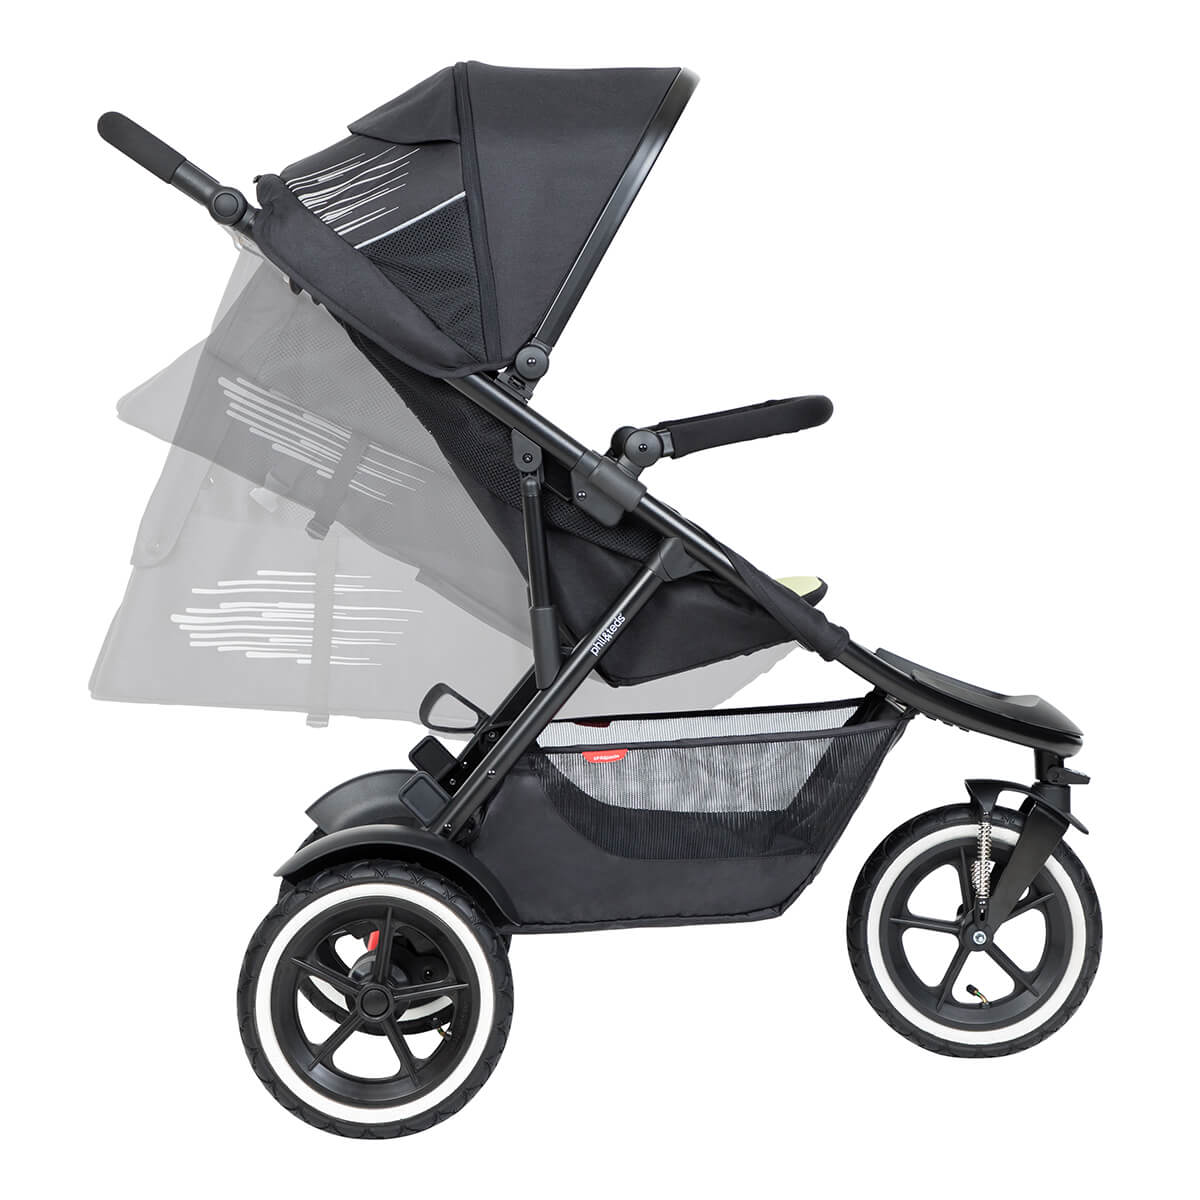 https://cdn.accentuate.io/4513463238752/19440099492024/philteds-sport-buggy-can-recline-in-multiple-angles-including-full-recline-for-newborn-baby-v1626486626972.jpg?1200x1200